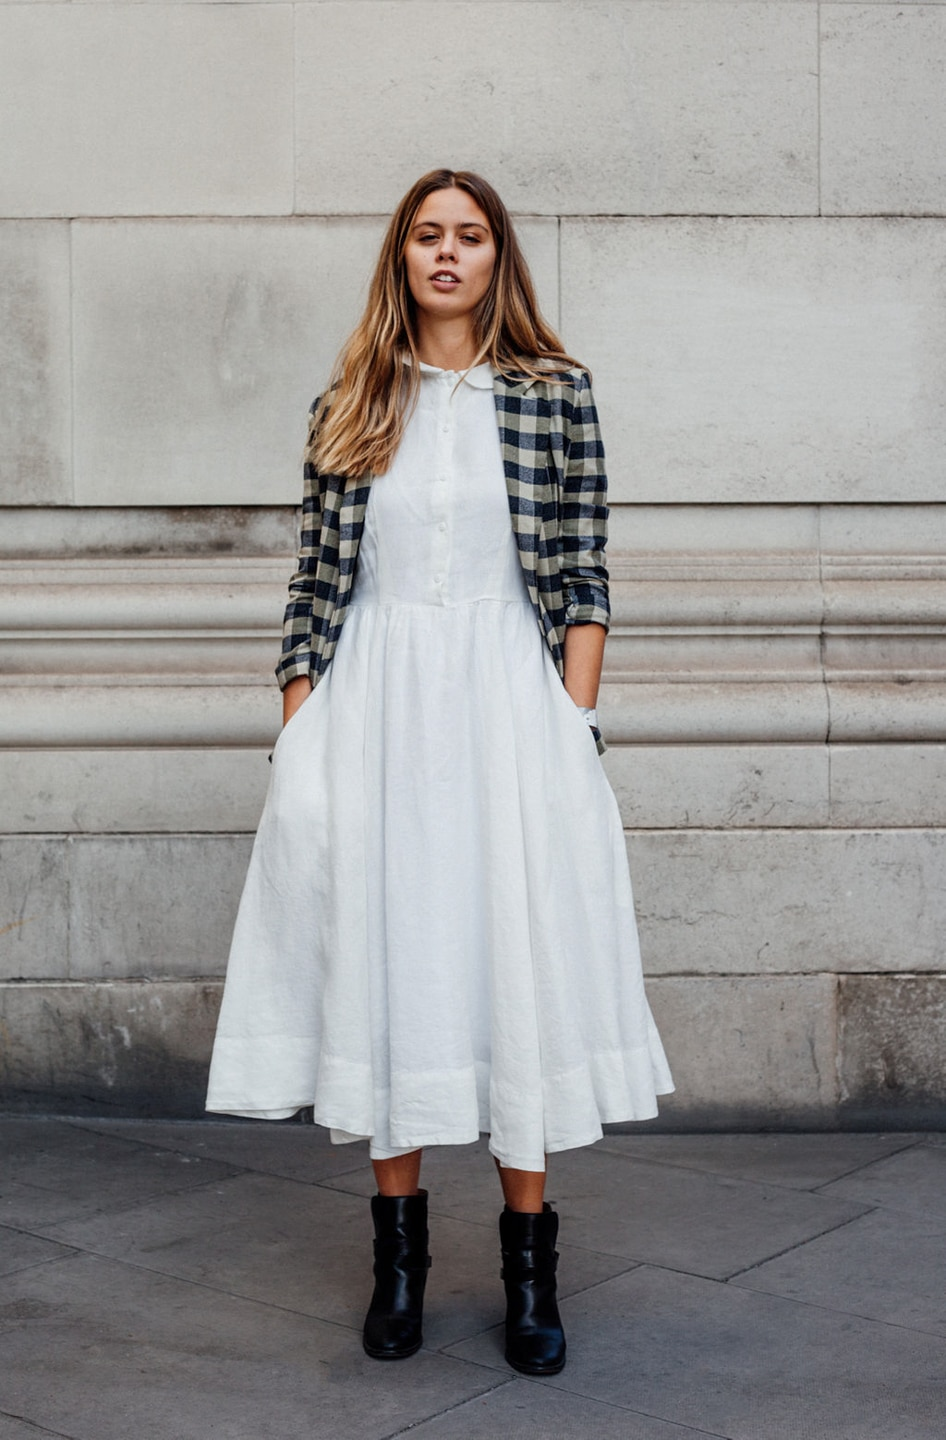 Jil wears white dress with checked jacket